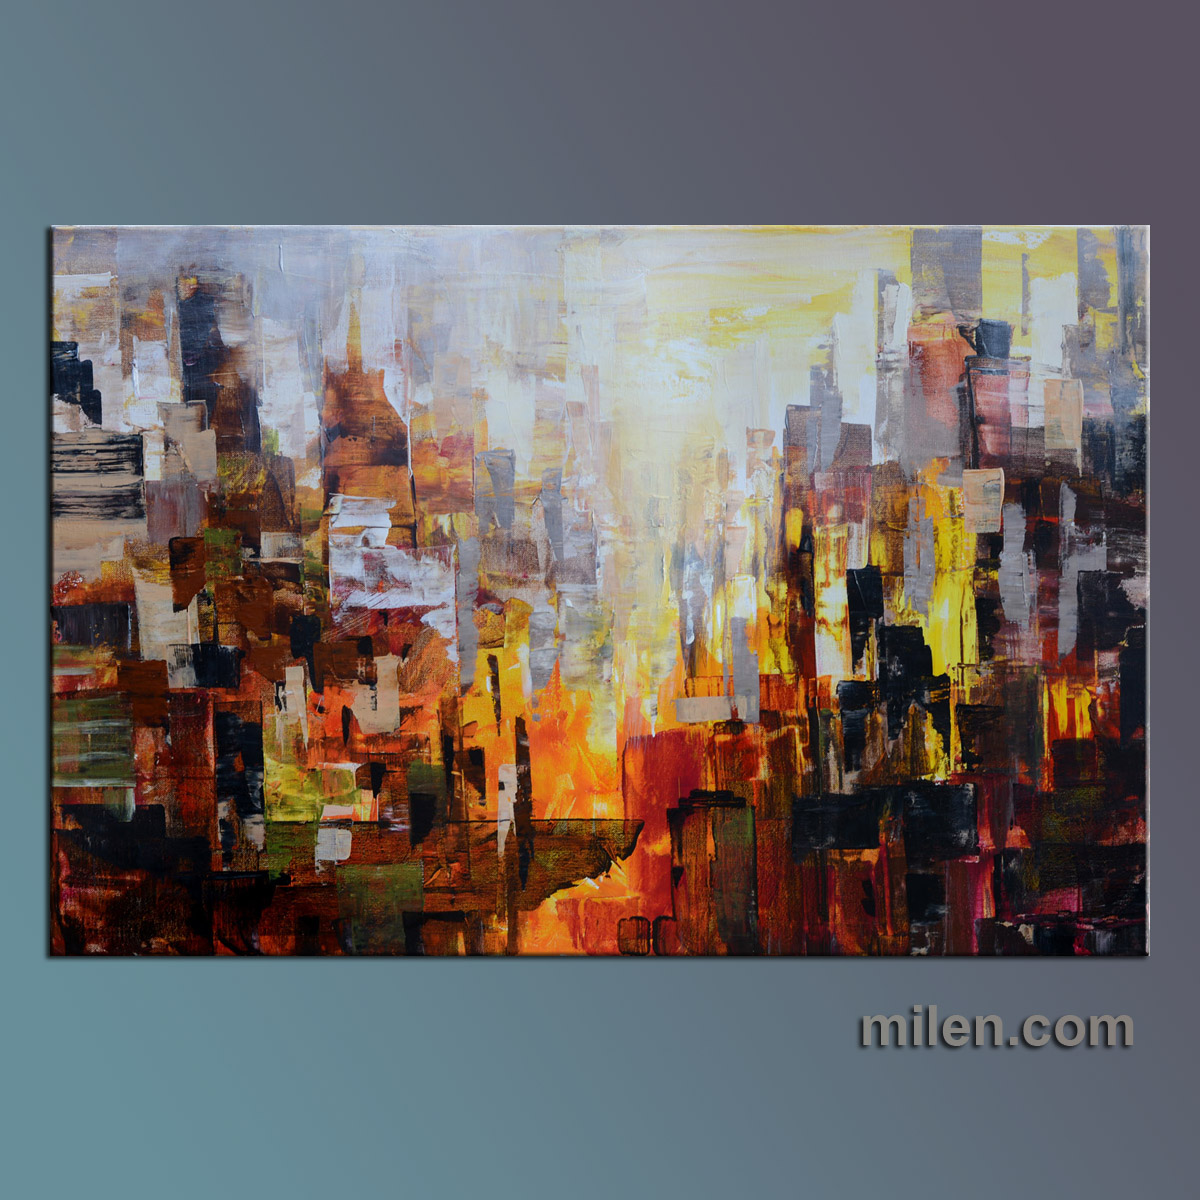 100 Hand Drawn City At Night 3 Knife Painting Modern: Abstract Paintings